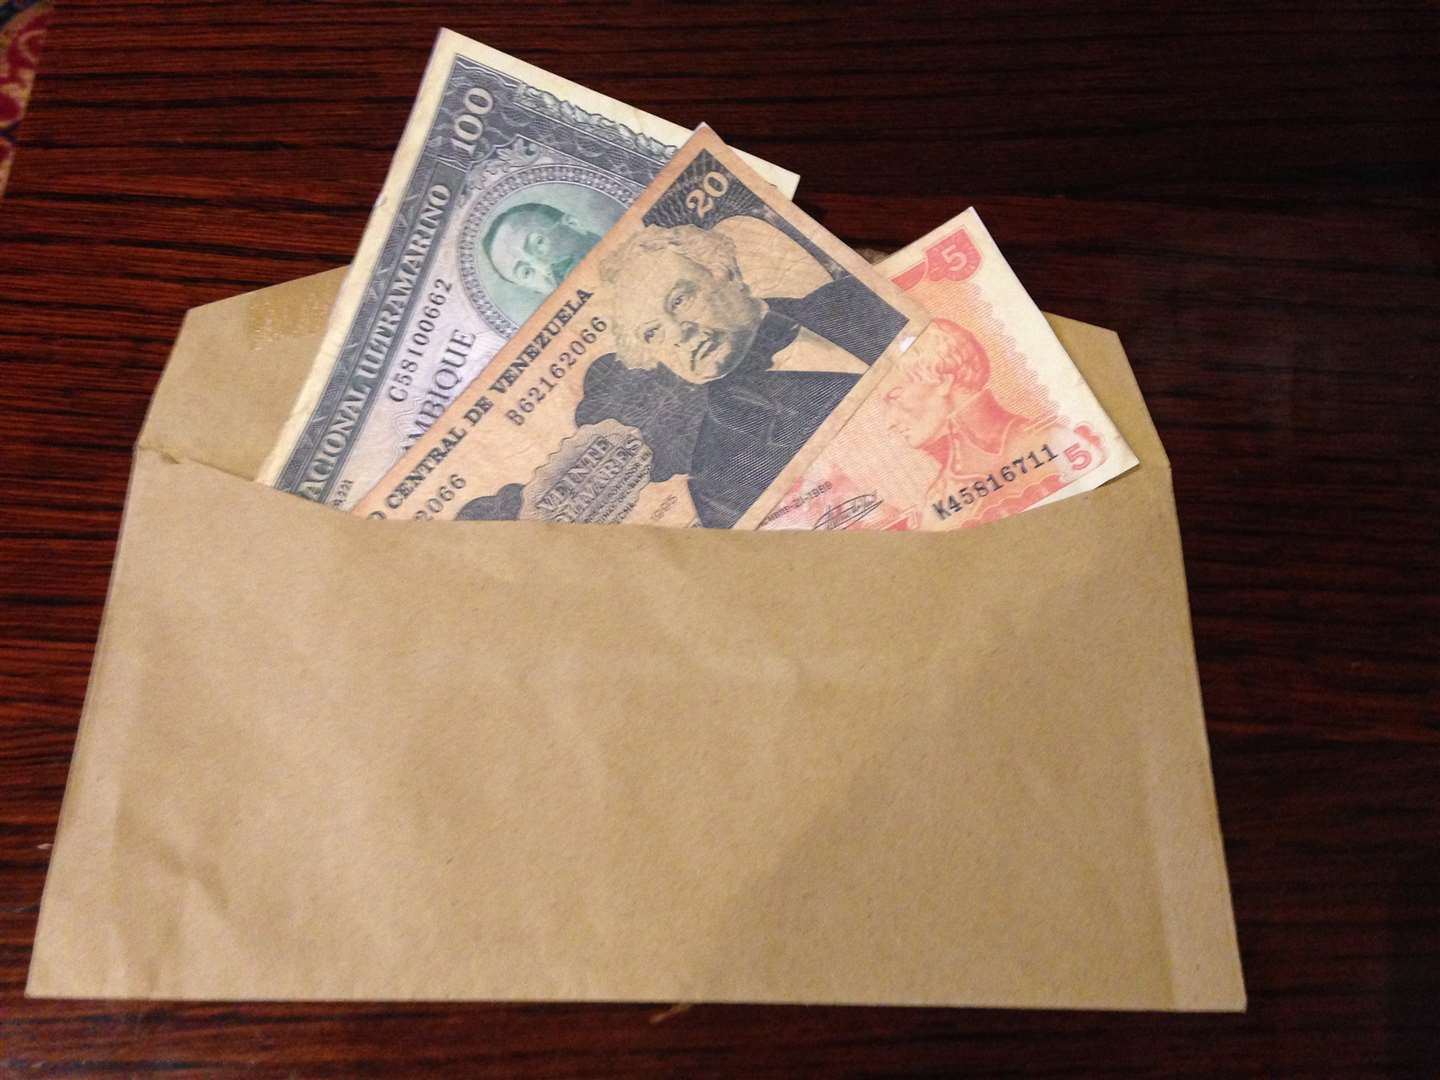 Brown envelopes with foreign currency was posted through letter boxes of town councillors